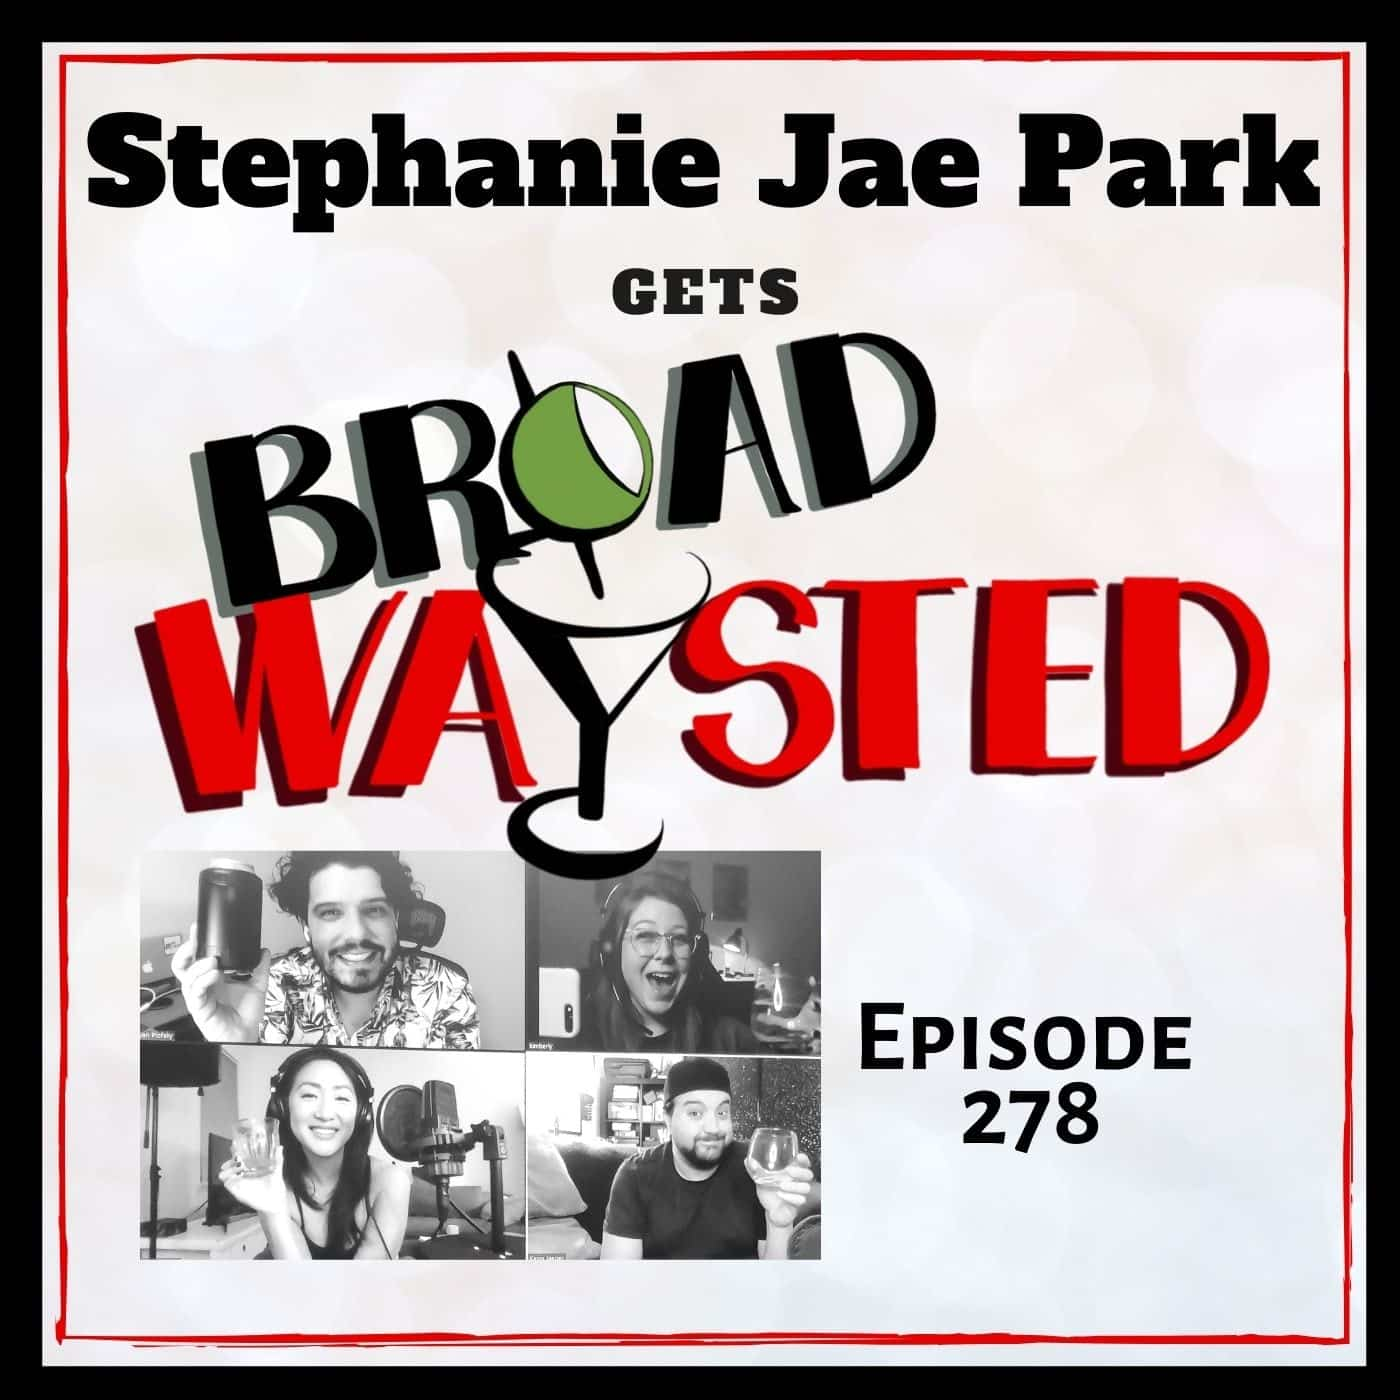 Episode 278: Stephanie Jae Park gets Broadwaysted!